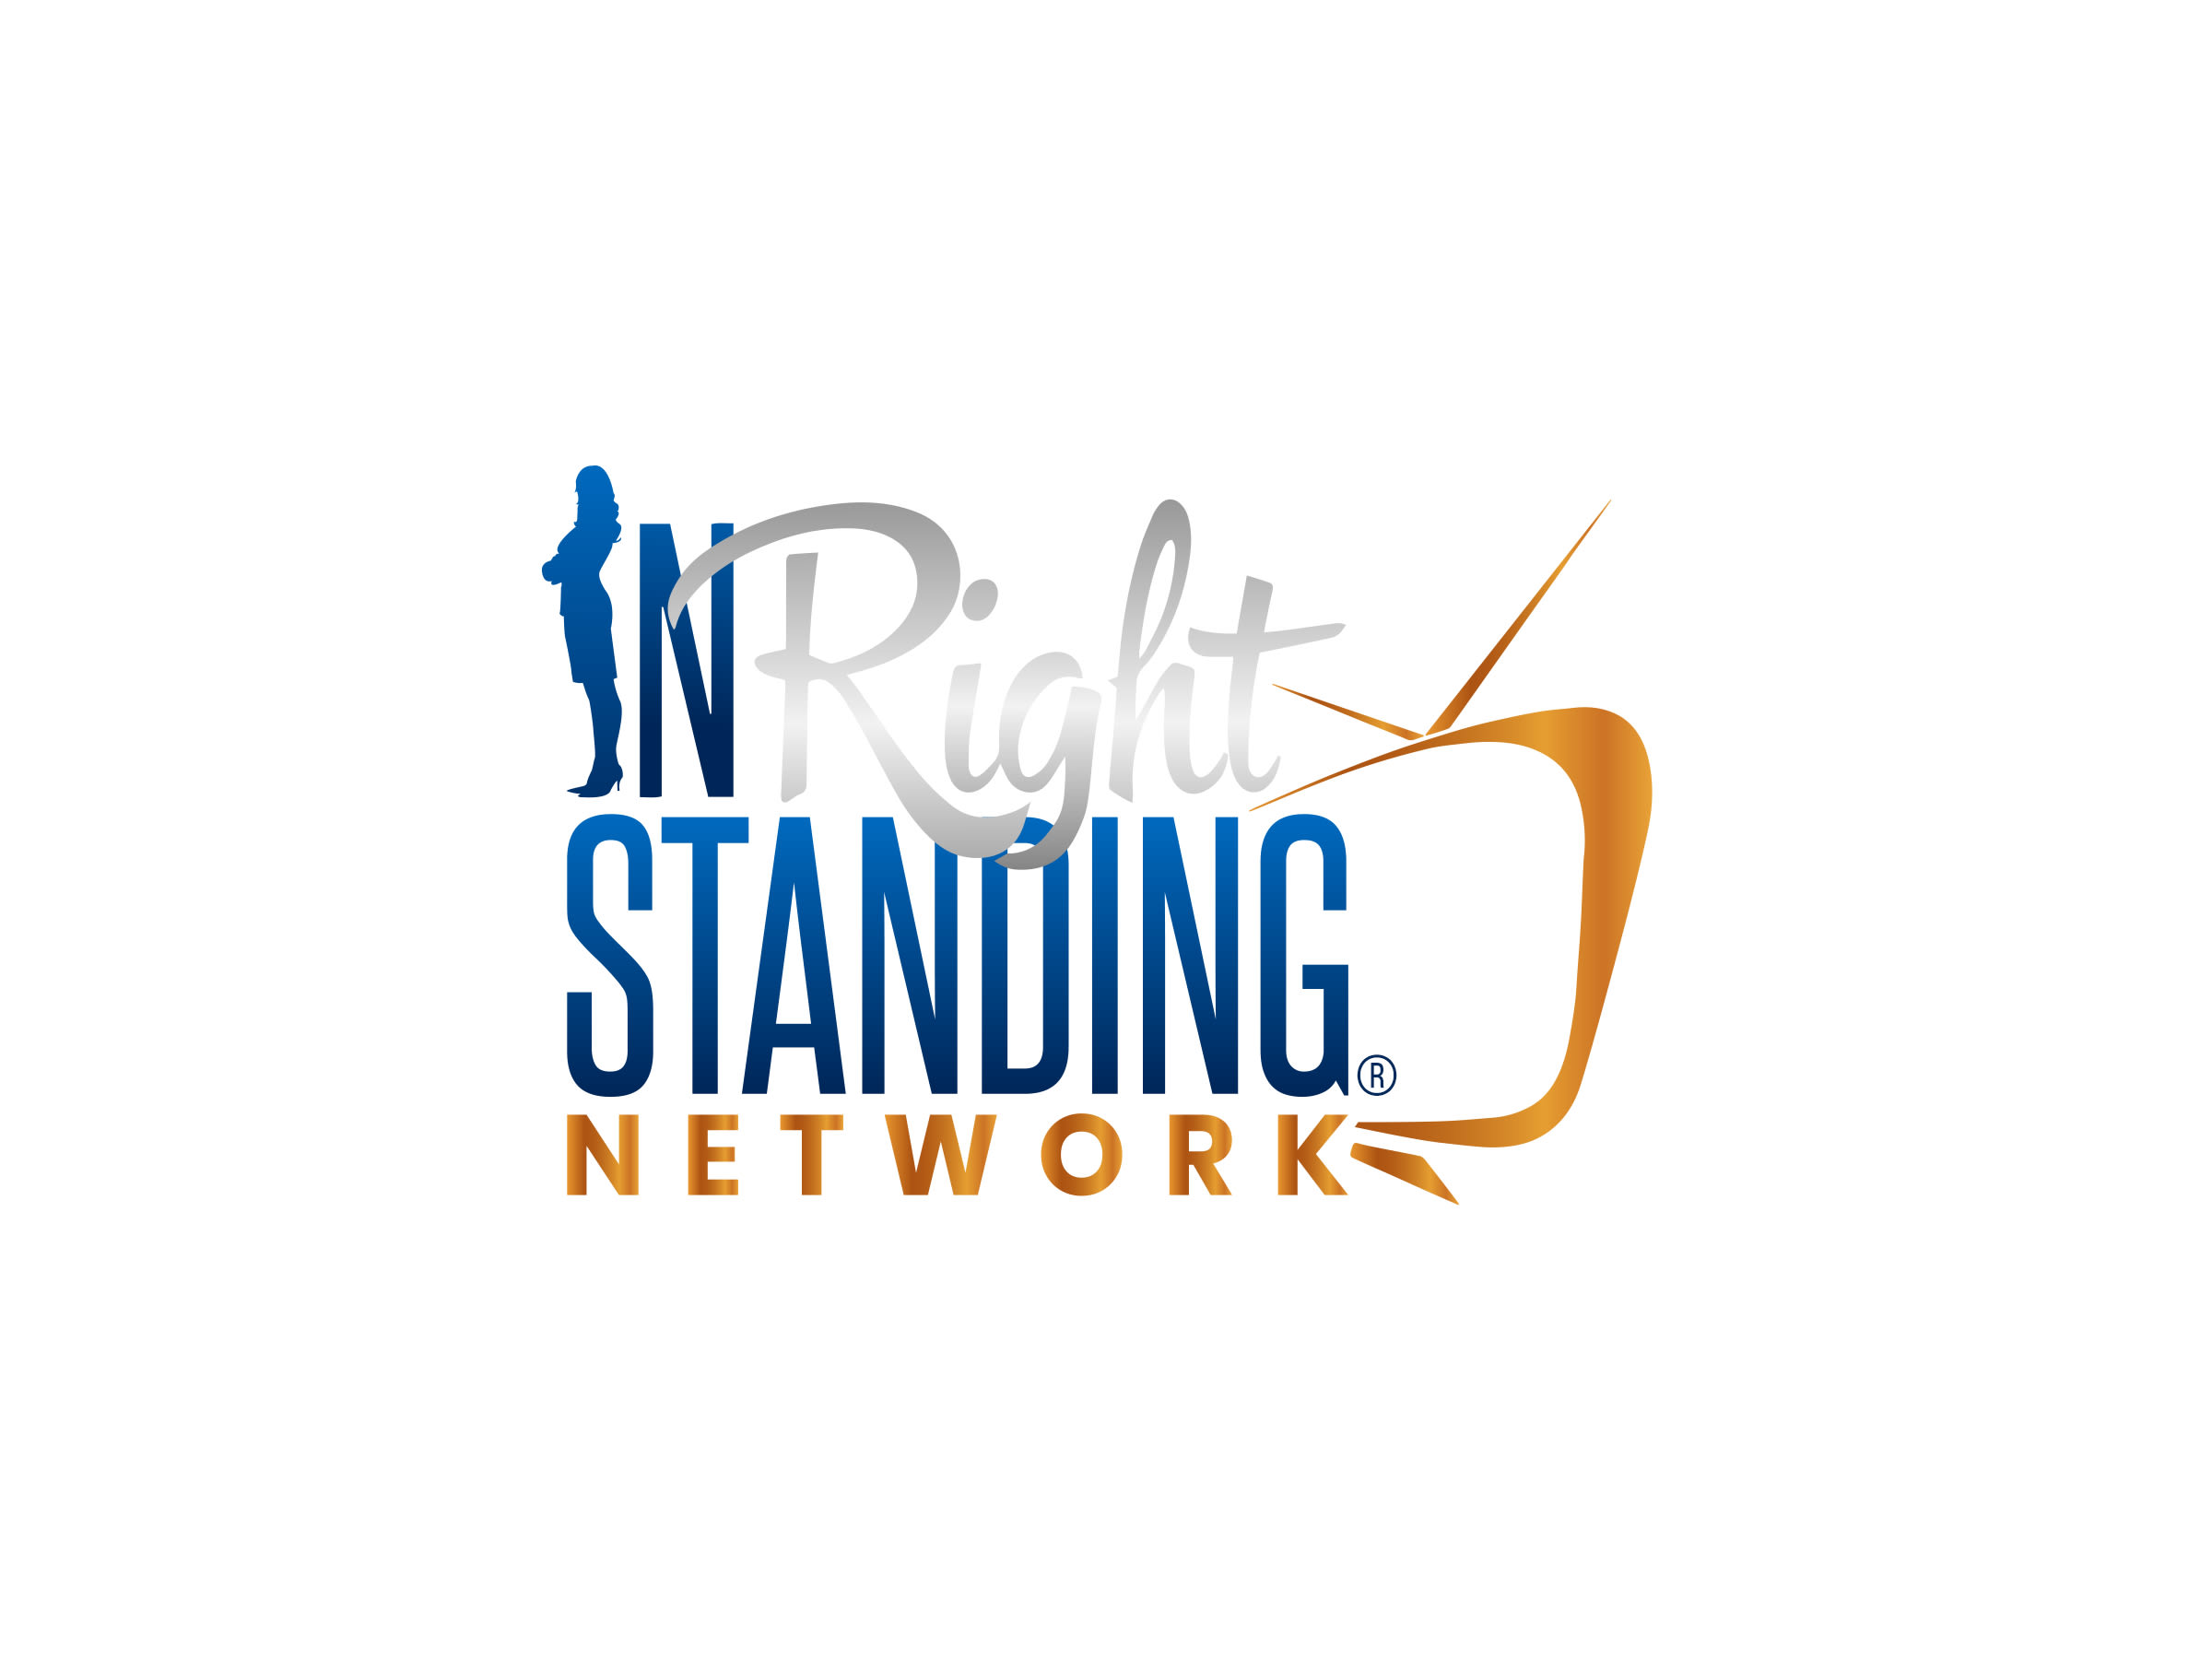 In Right Standing Network